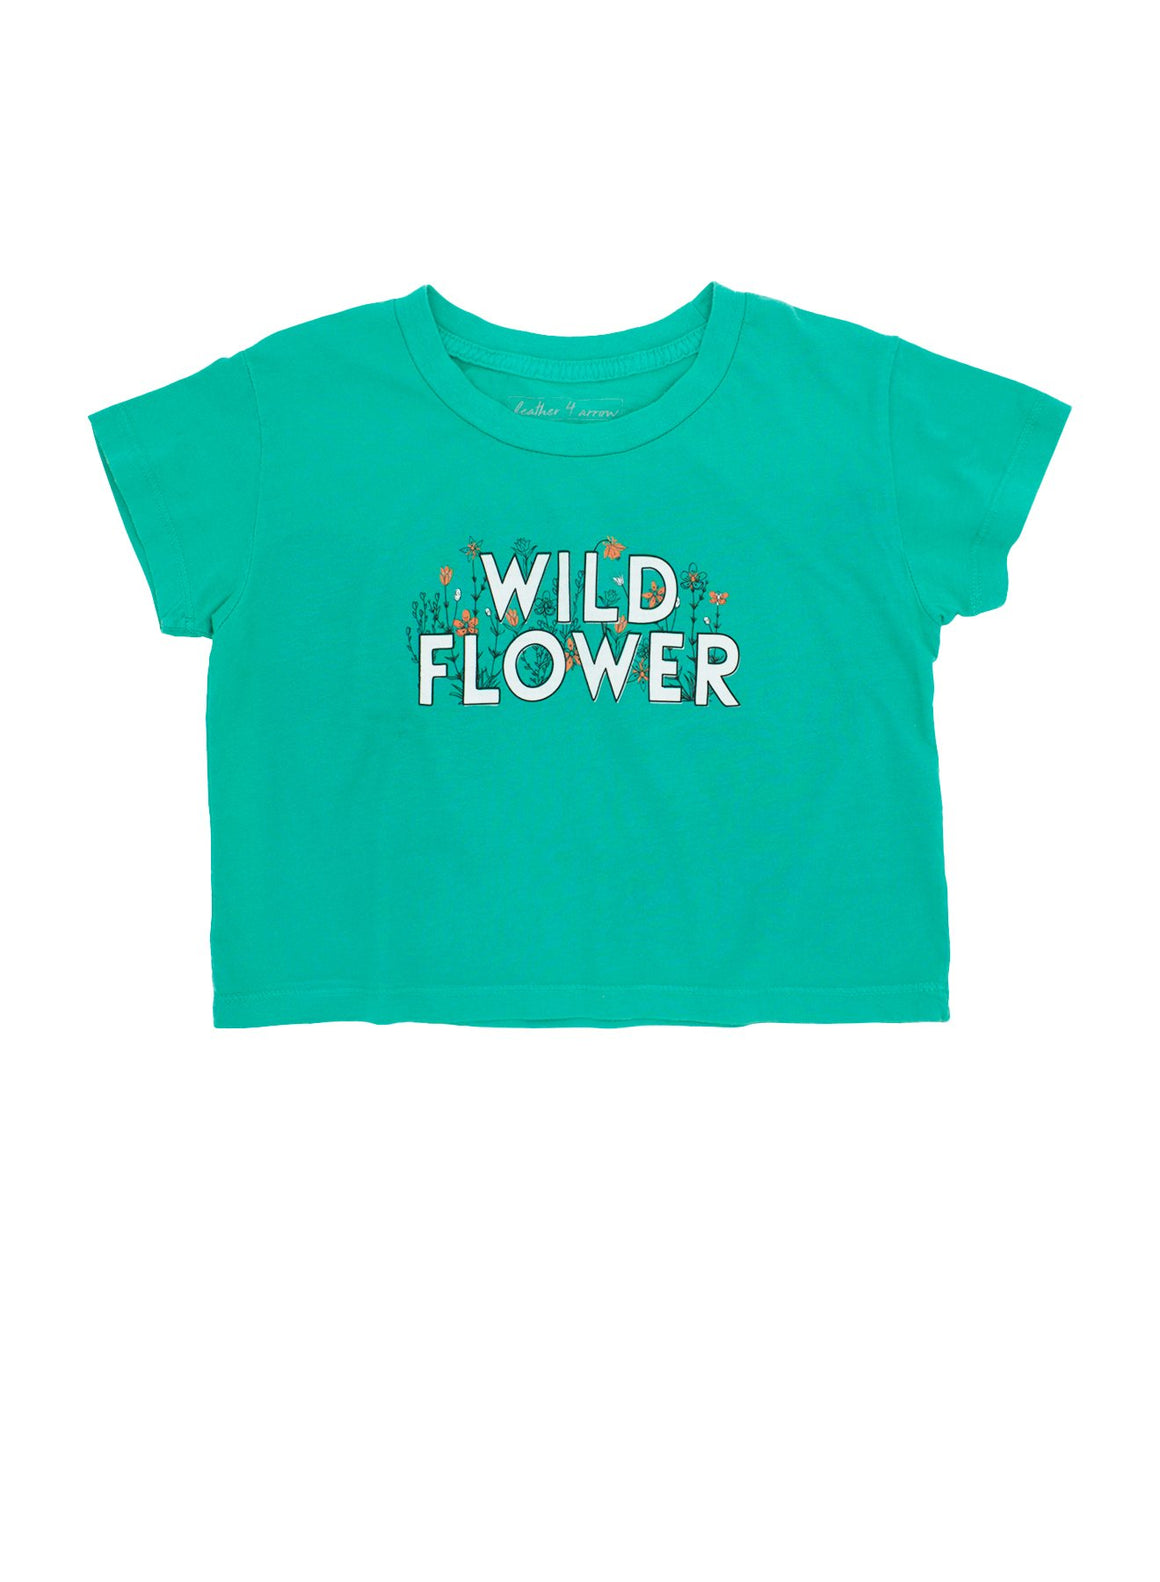 Feather 4 Arrow | Wild Flower Cropped Tee